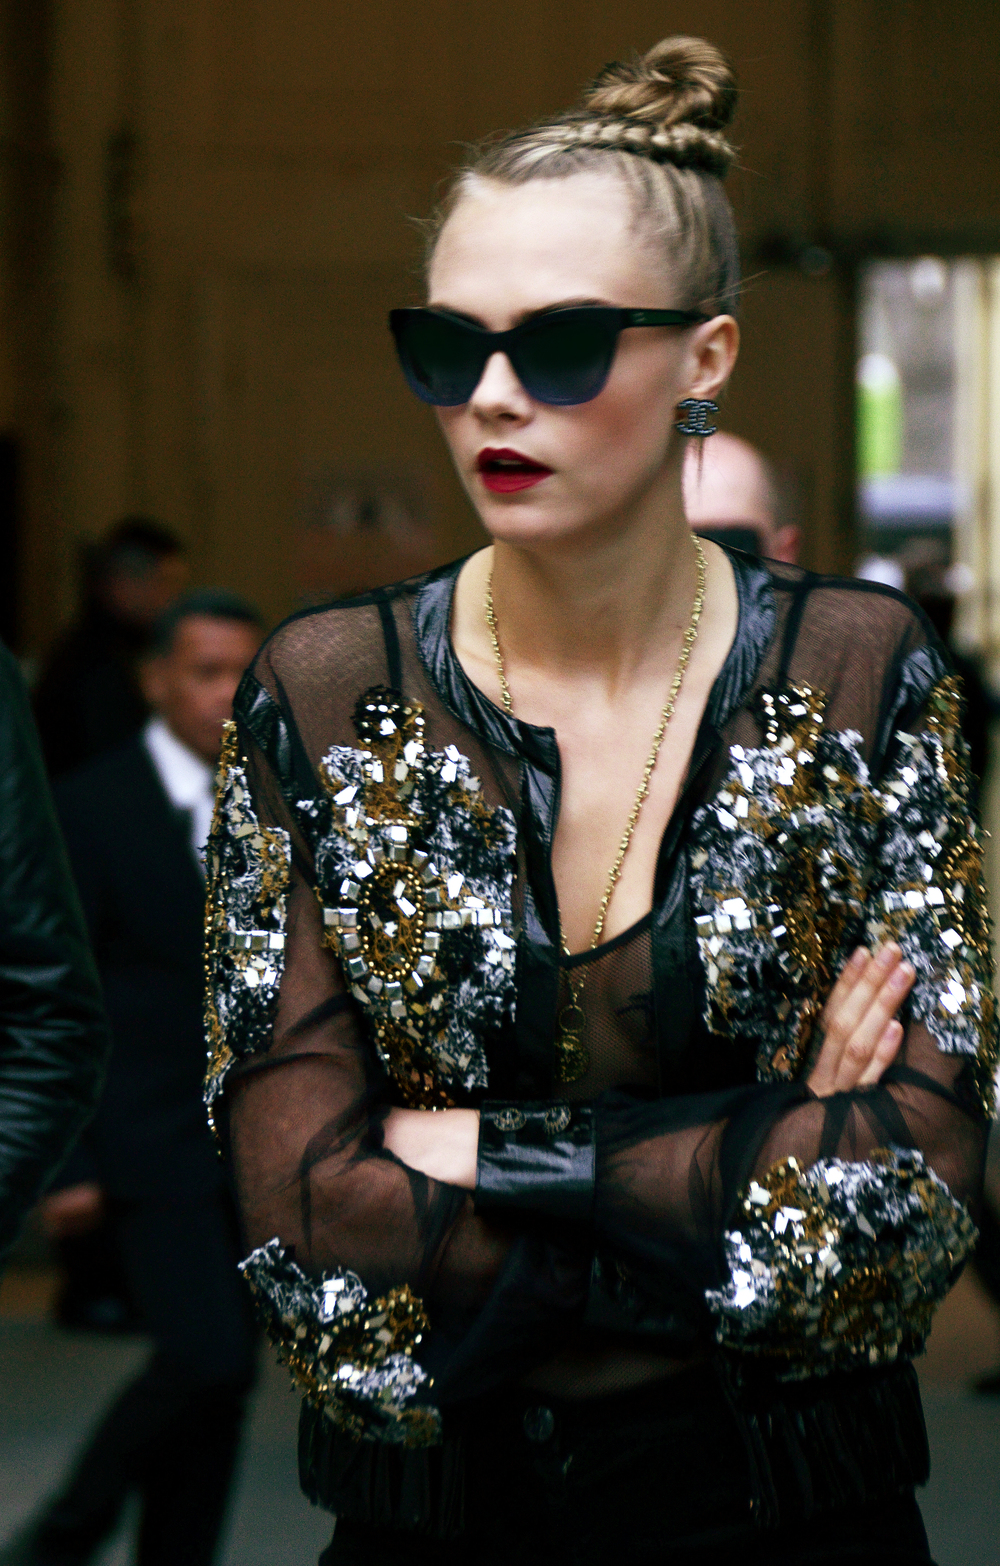 08_SS+16+HC_VIP+Picture+by+Stacy+Fuller_Cara+DELEVINGNE.jpg